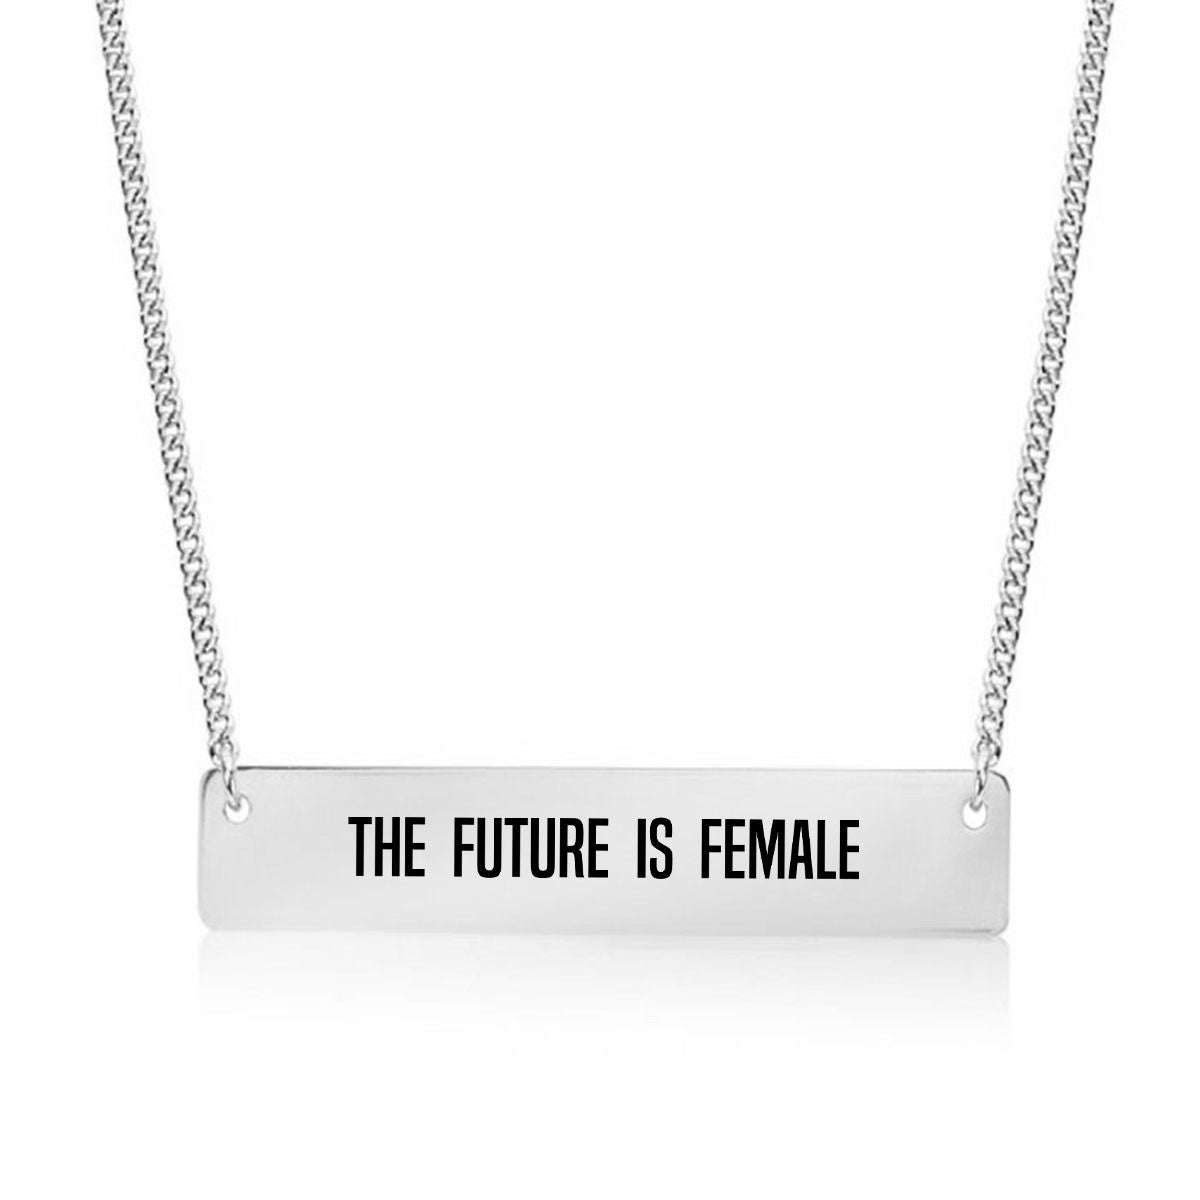 The Future is Female Gold / Silver Bar Necklace - pipercleo.com